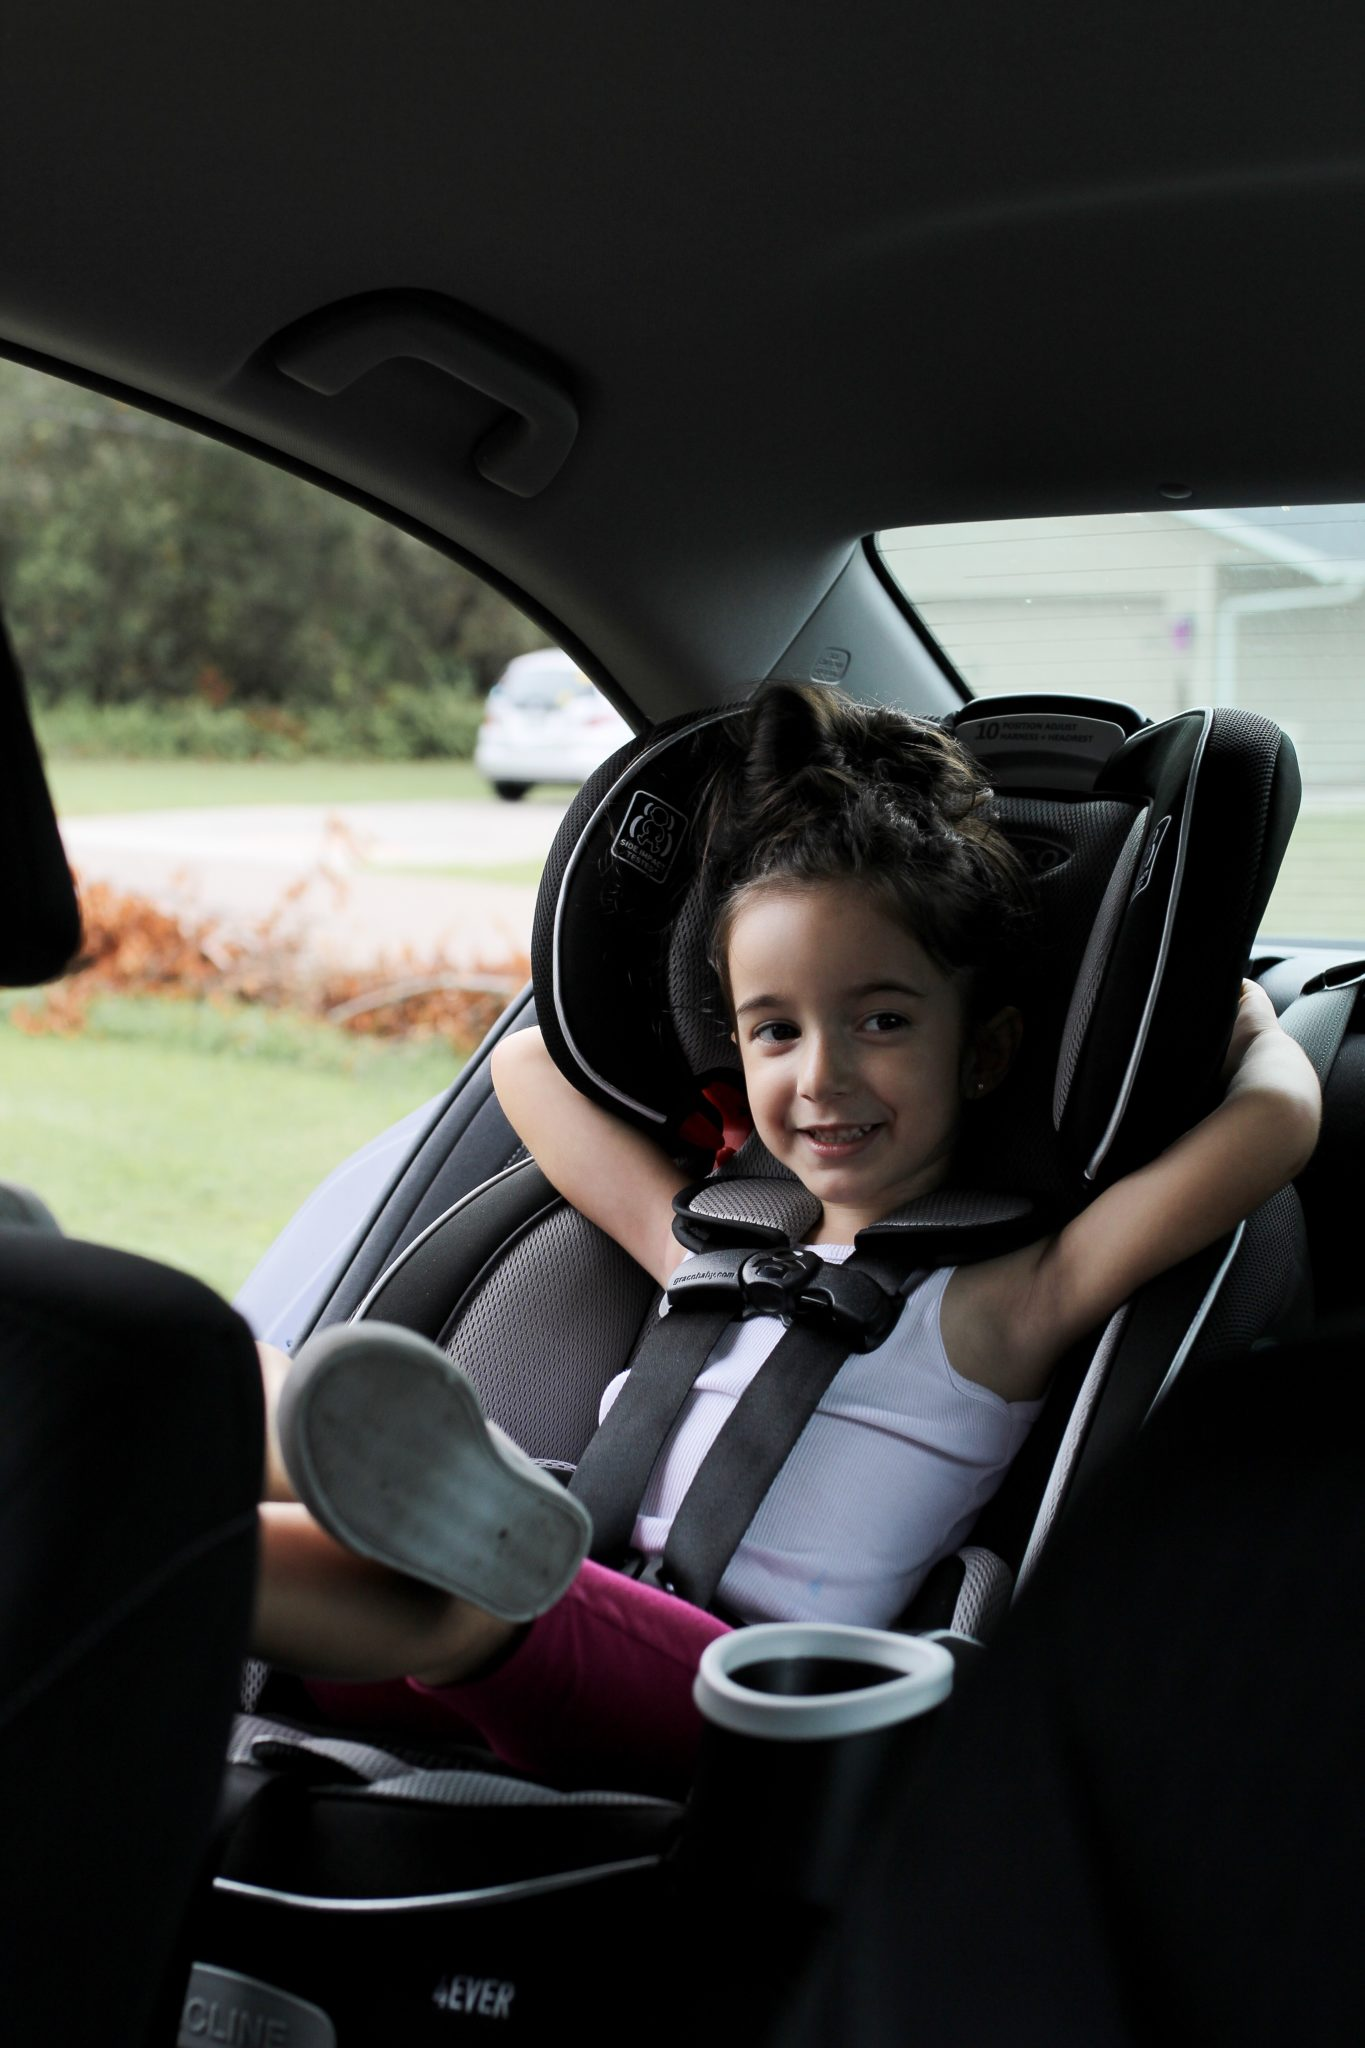 PRACTICAL TIPS FOR SELECTING A CAR SEAT